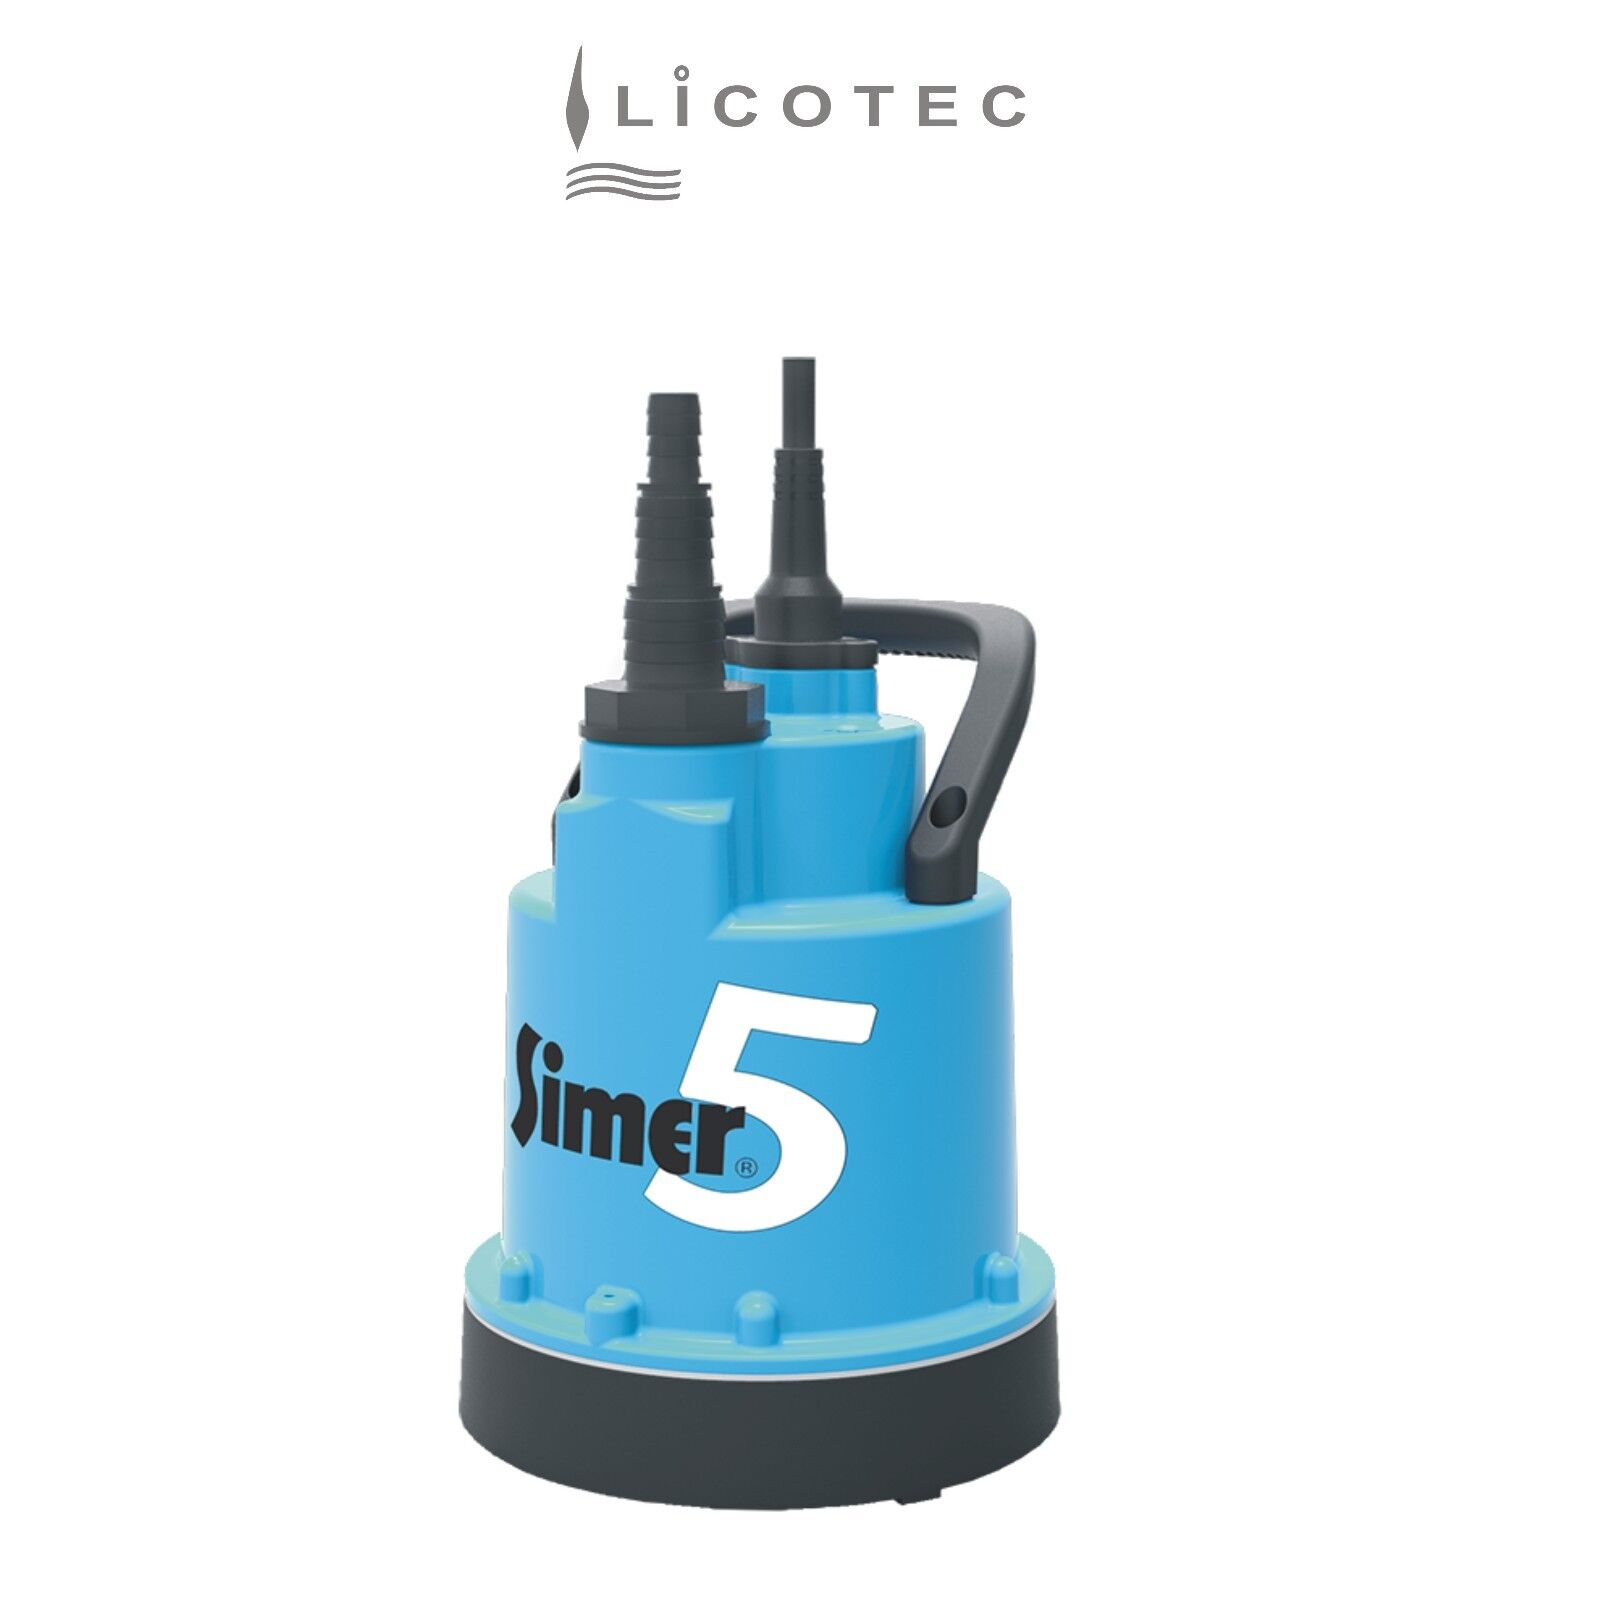 Young Pumps/Simer Flat Cleaner Submersible Pump without Float Switch